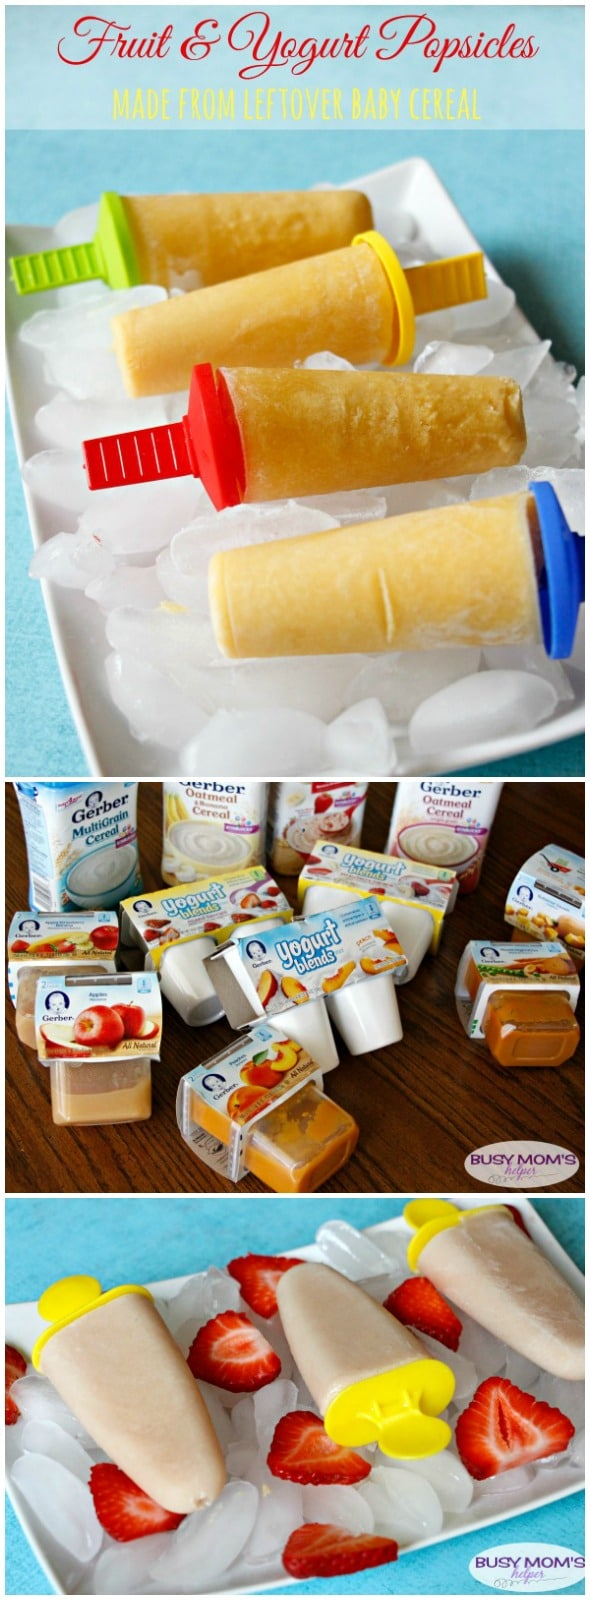 Fruit & Yogurt Popsicles / by BusyMomsHelper.com / Homemade Popsicles / Great recipes for leftover baby food #ad #CookingWithGerber